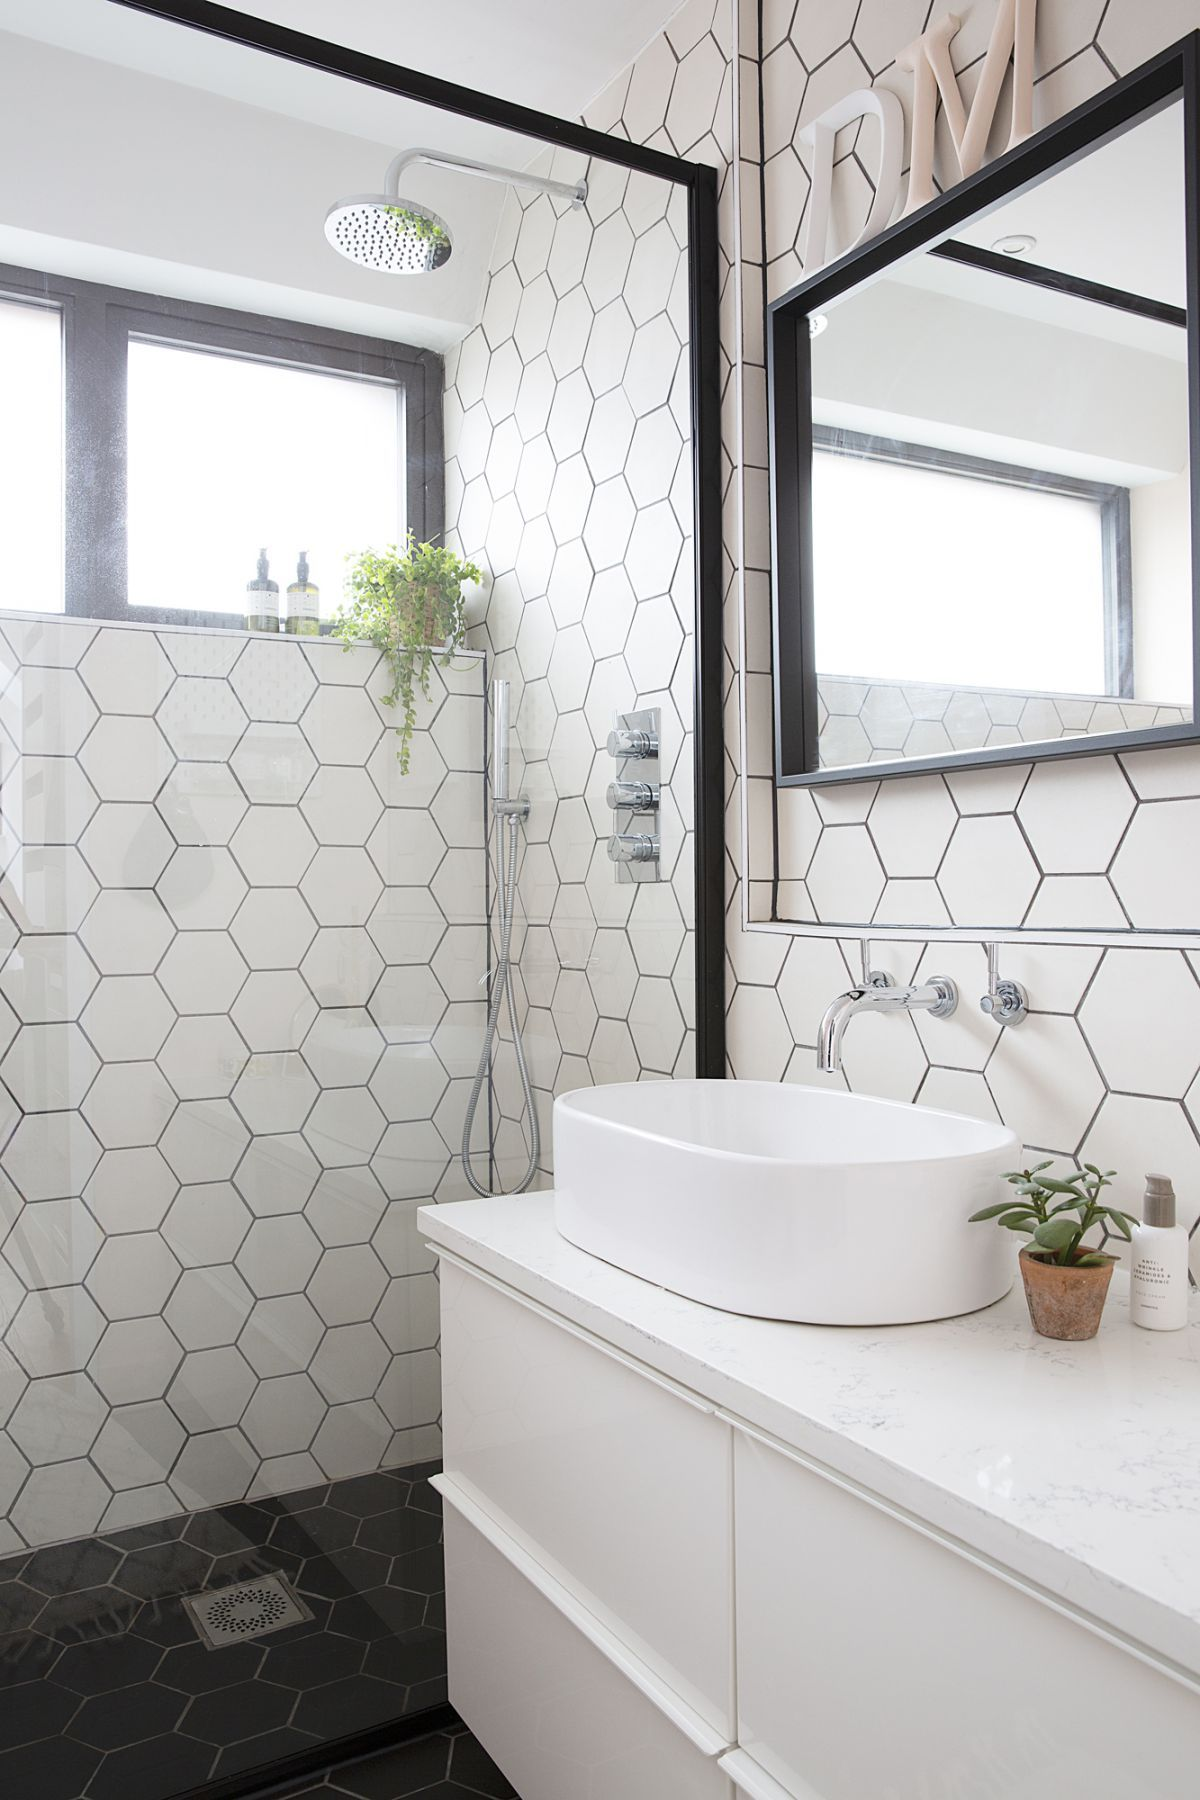 Looking for tiles for your small bathroom?